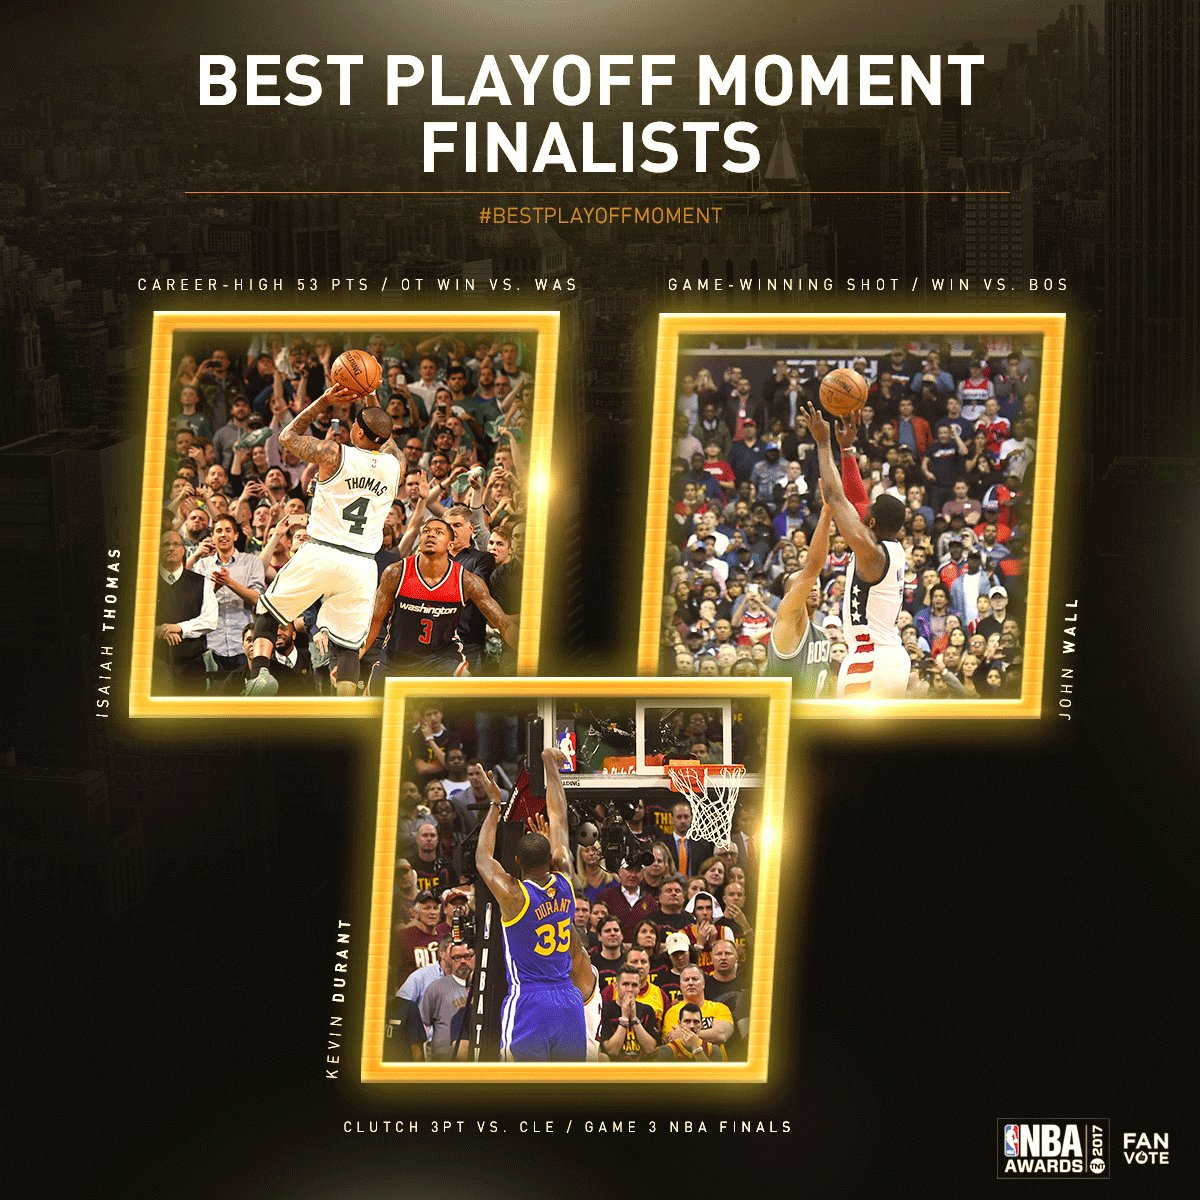 What was the Best Playoff Moment of 2017? Vote using player's name & #BestPlayoffMoment. #NBAAwards